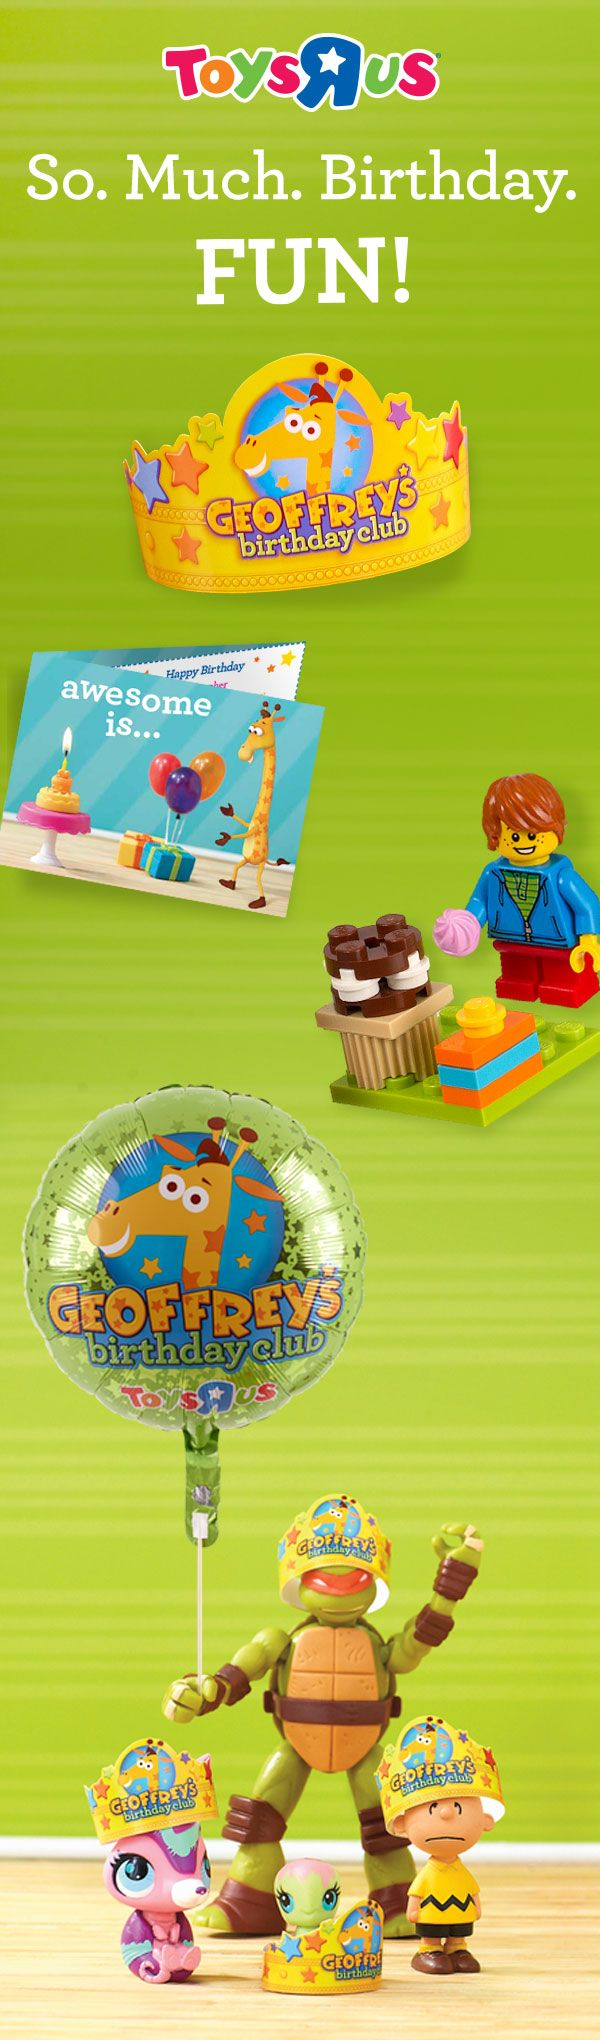 Toys R Us Birthday Party : Best geoffrey s birthday club images on pinterest